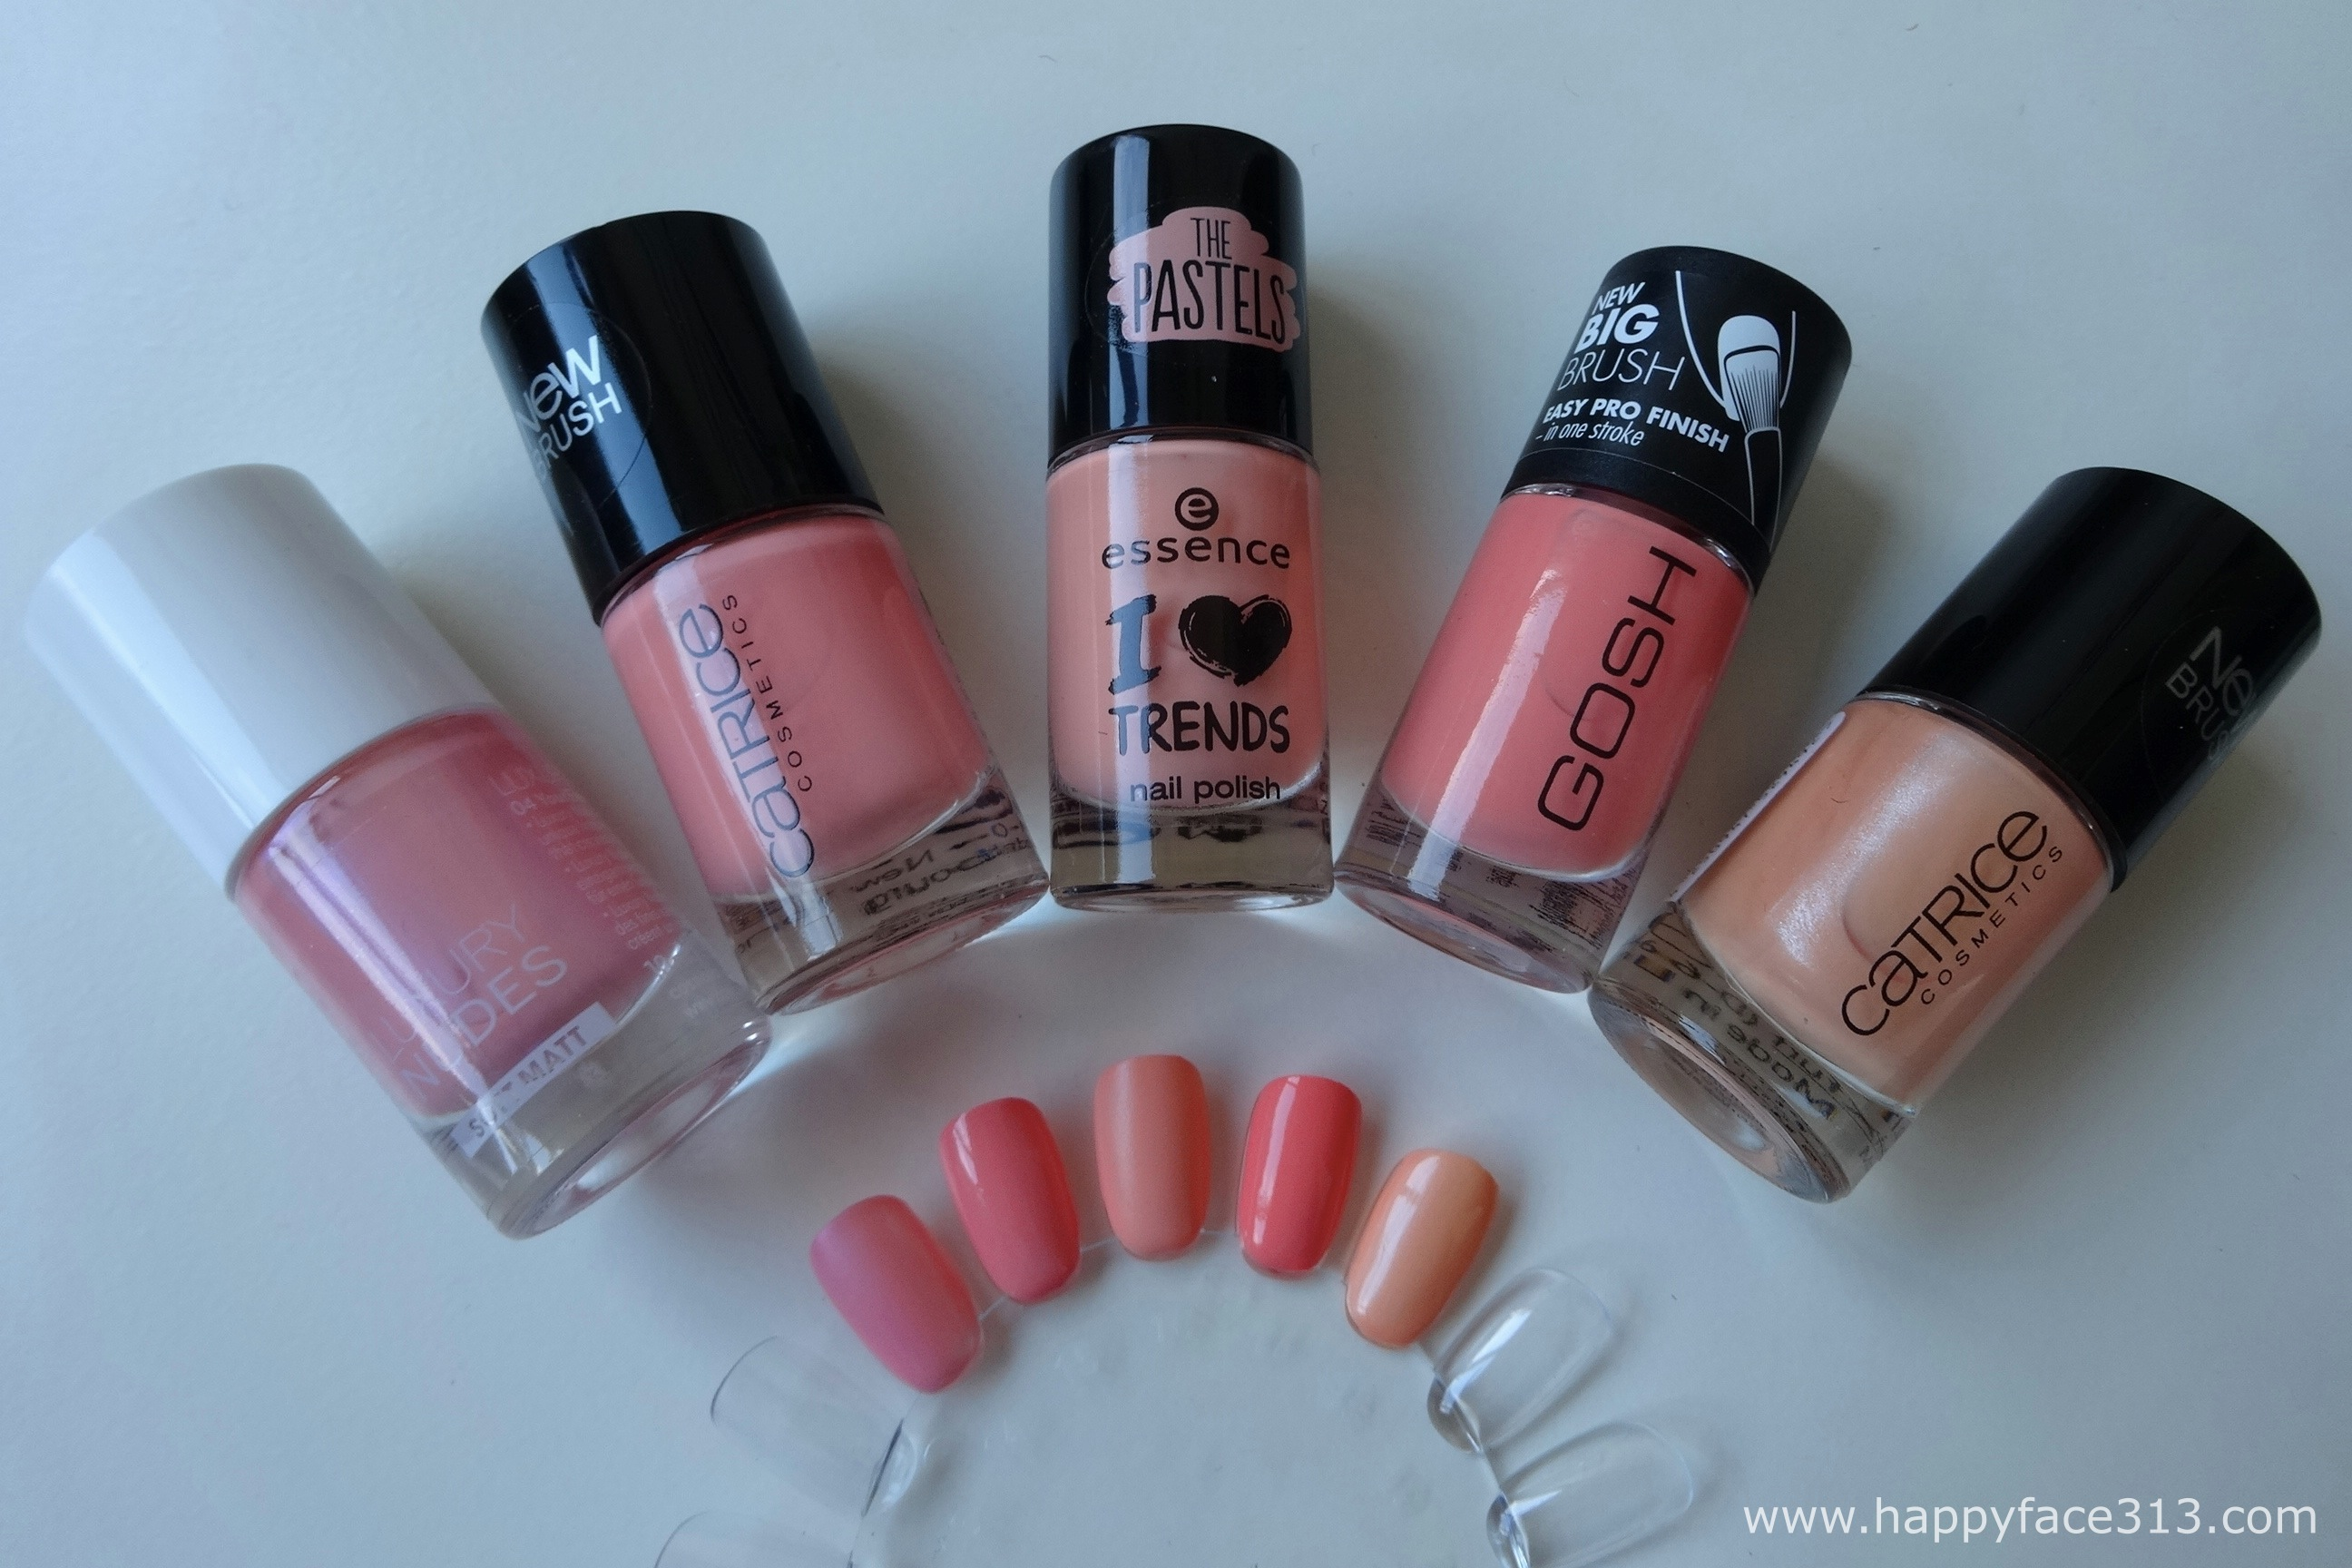 Catrice Luxury Nudes, Catrice, essence The Pastels, GOSH, Catrice